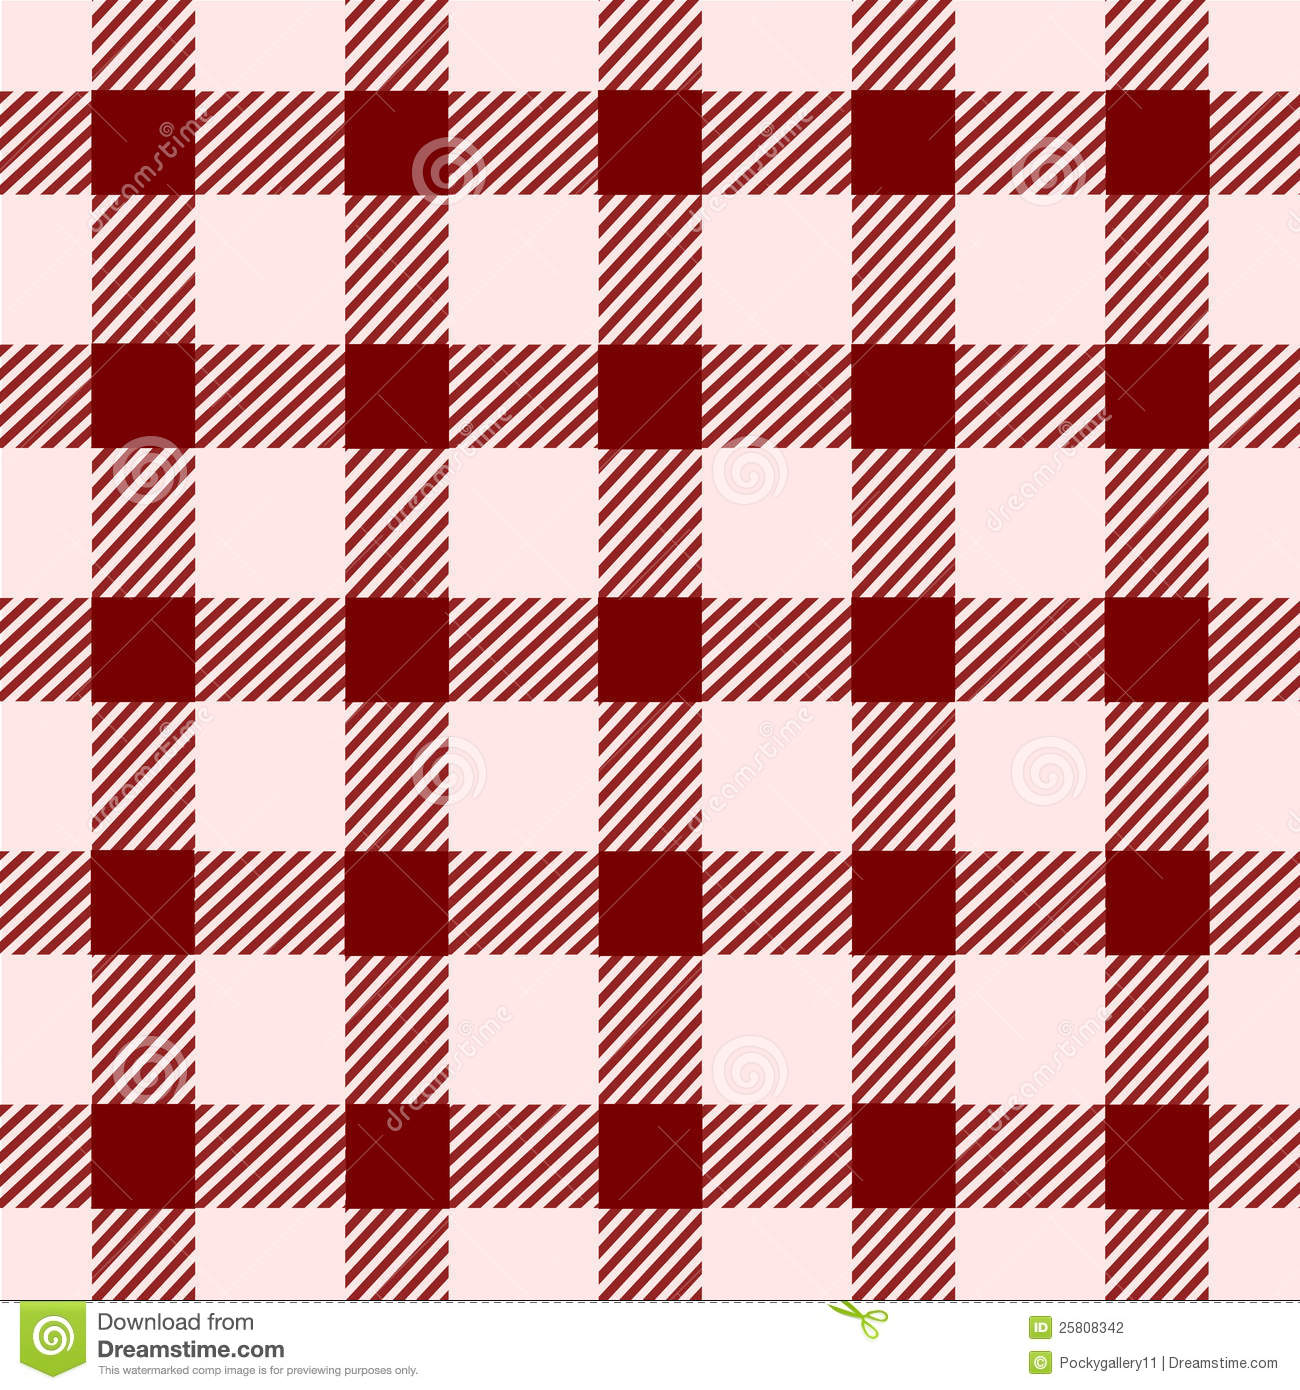 Red Square Vintage Seamless Pattern Stock Vector